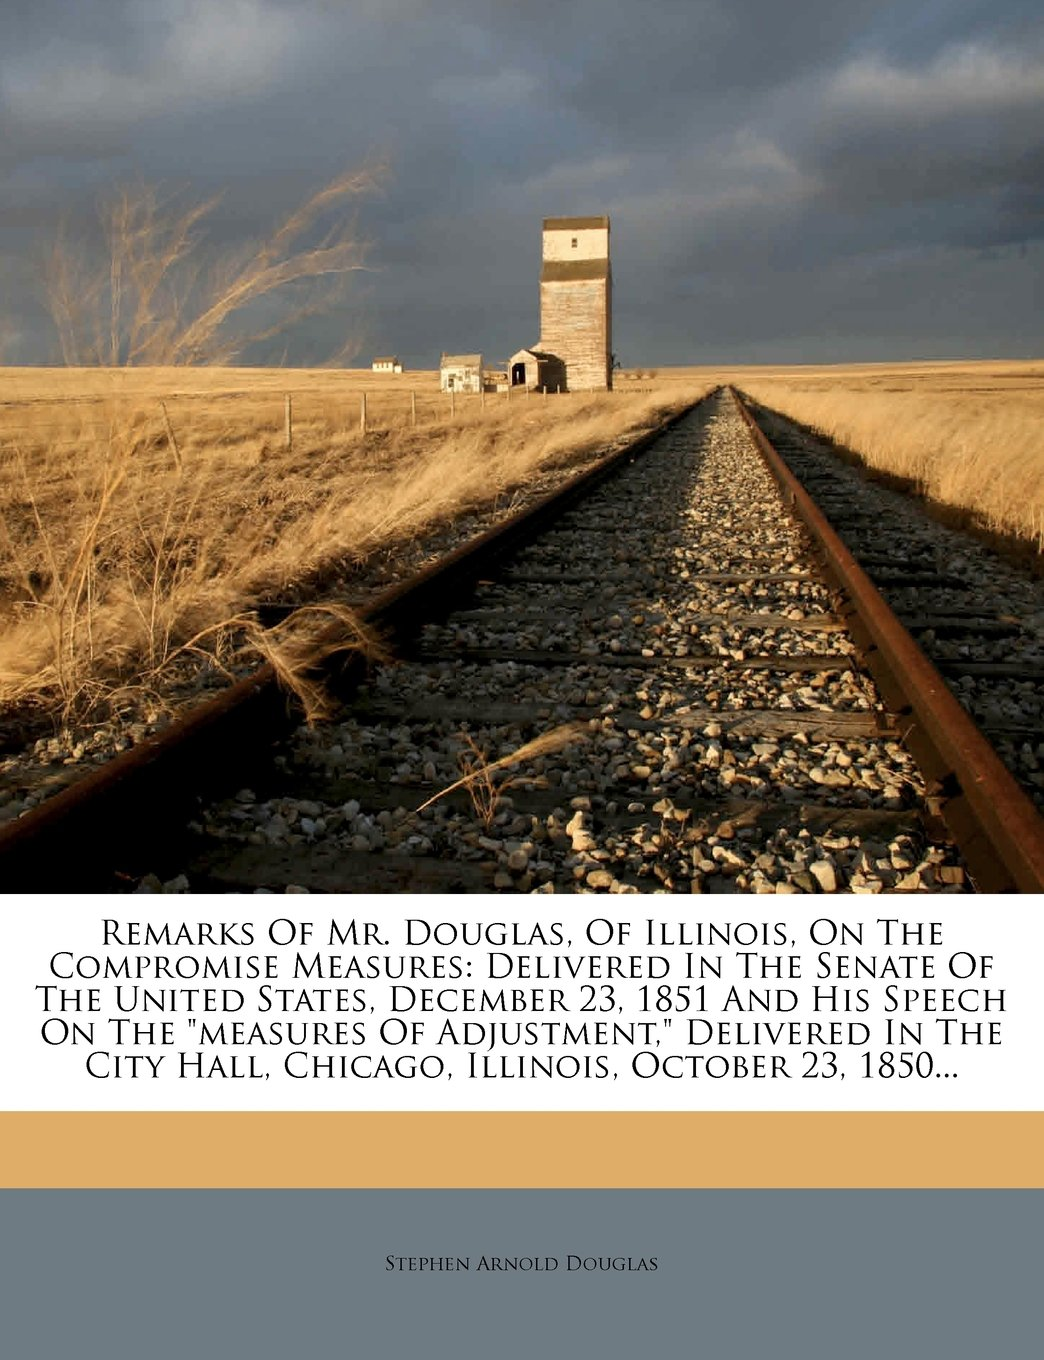 Download Remarks Of Mr. Douglas, Of Illinois, On The Compromise Measures: Delivered In The Senate Of The United States, December 23, 1851 And His Speech On The ... Hall, Chicago, Illinois, October 23, 1850... PDF